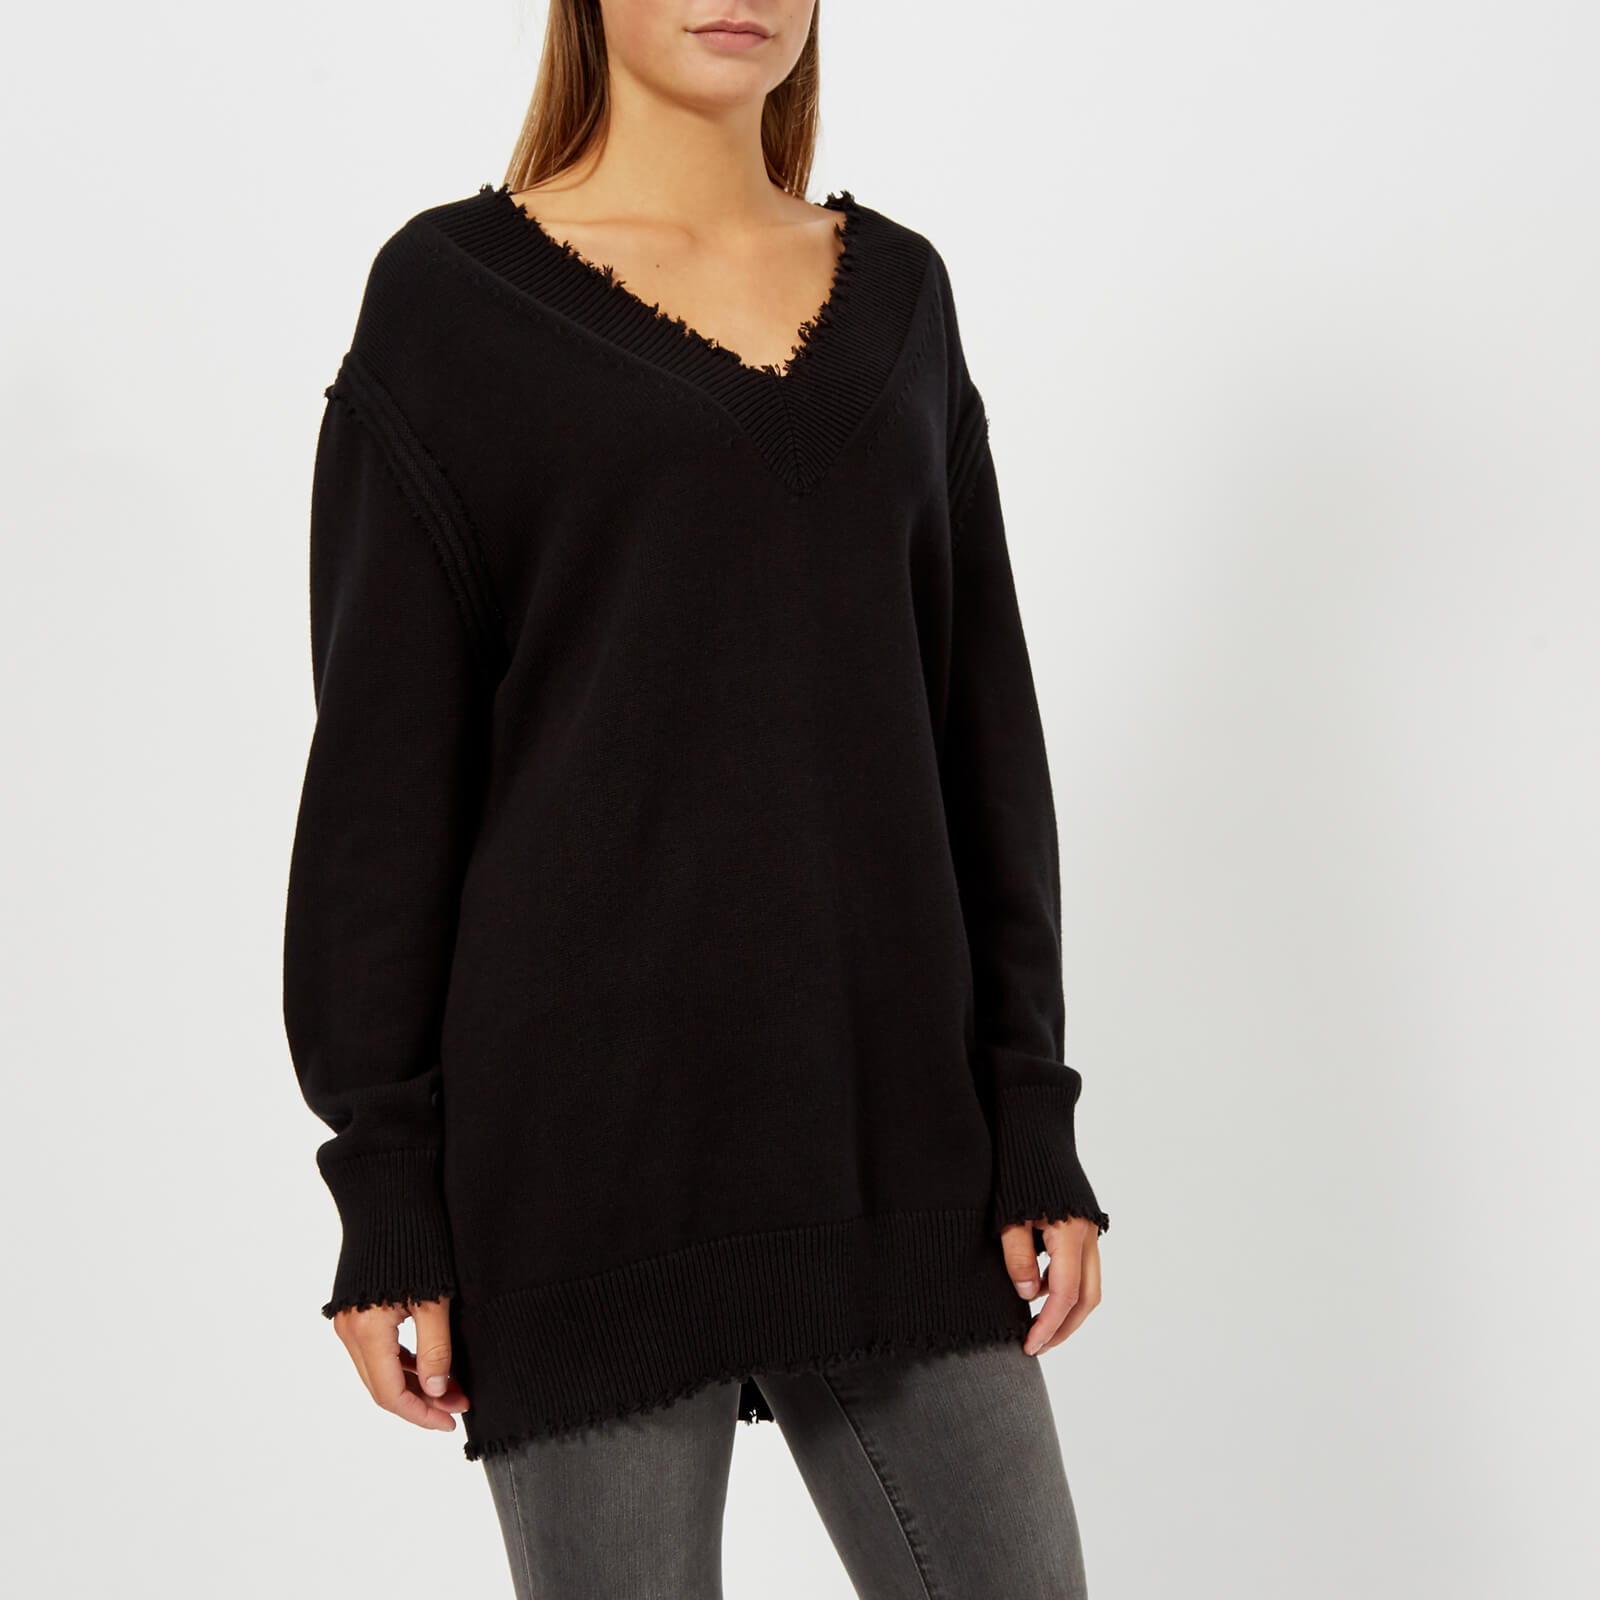 1be17e419c5 T by Alexander Wang Women s Raw Edge V-Neck Sweatshirt - Black - Free UK  Delivery over £50